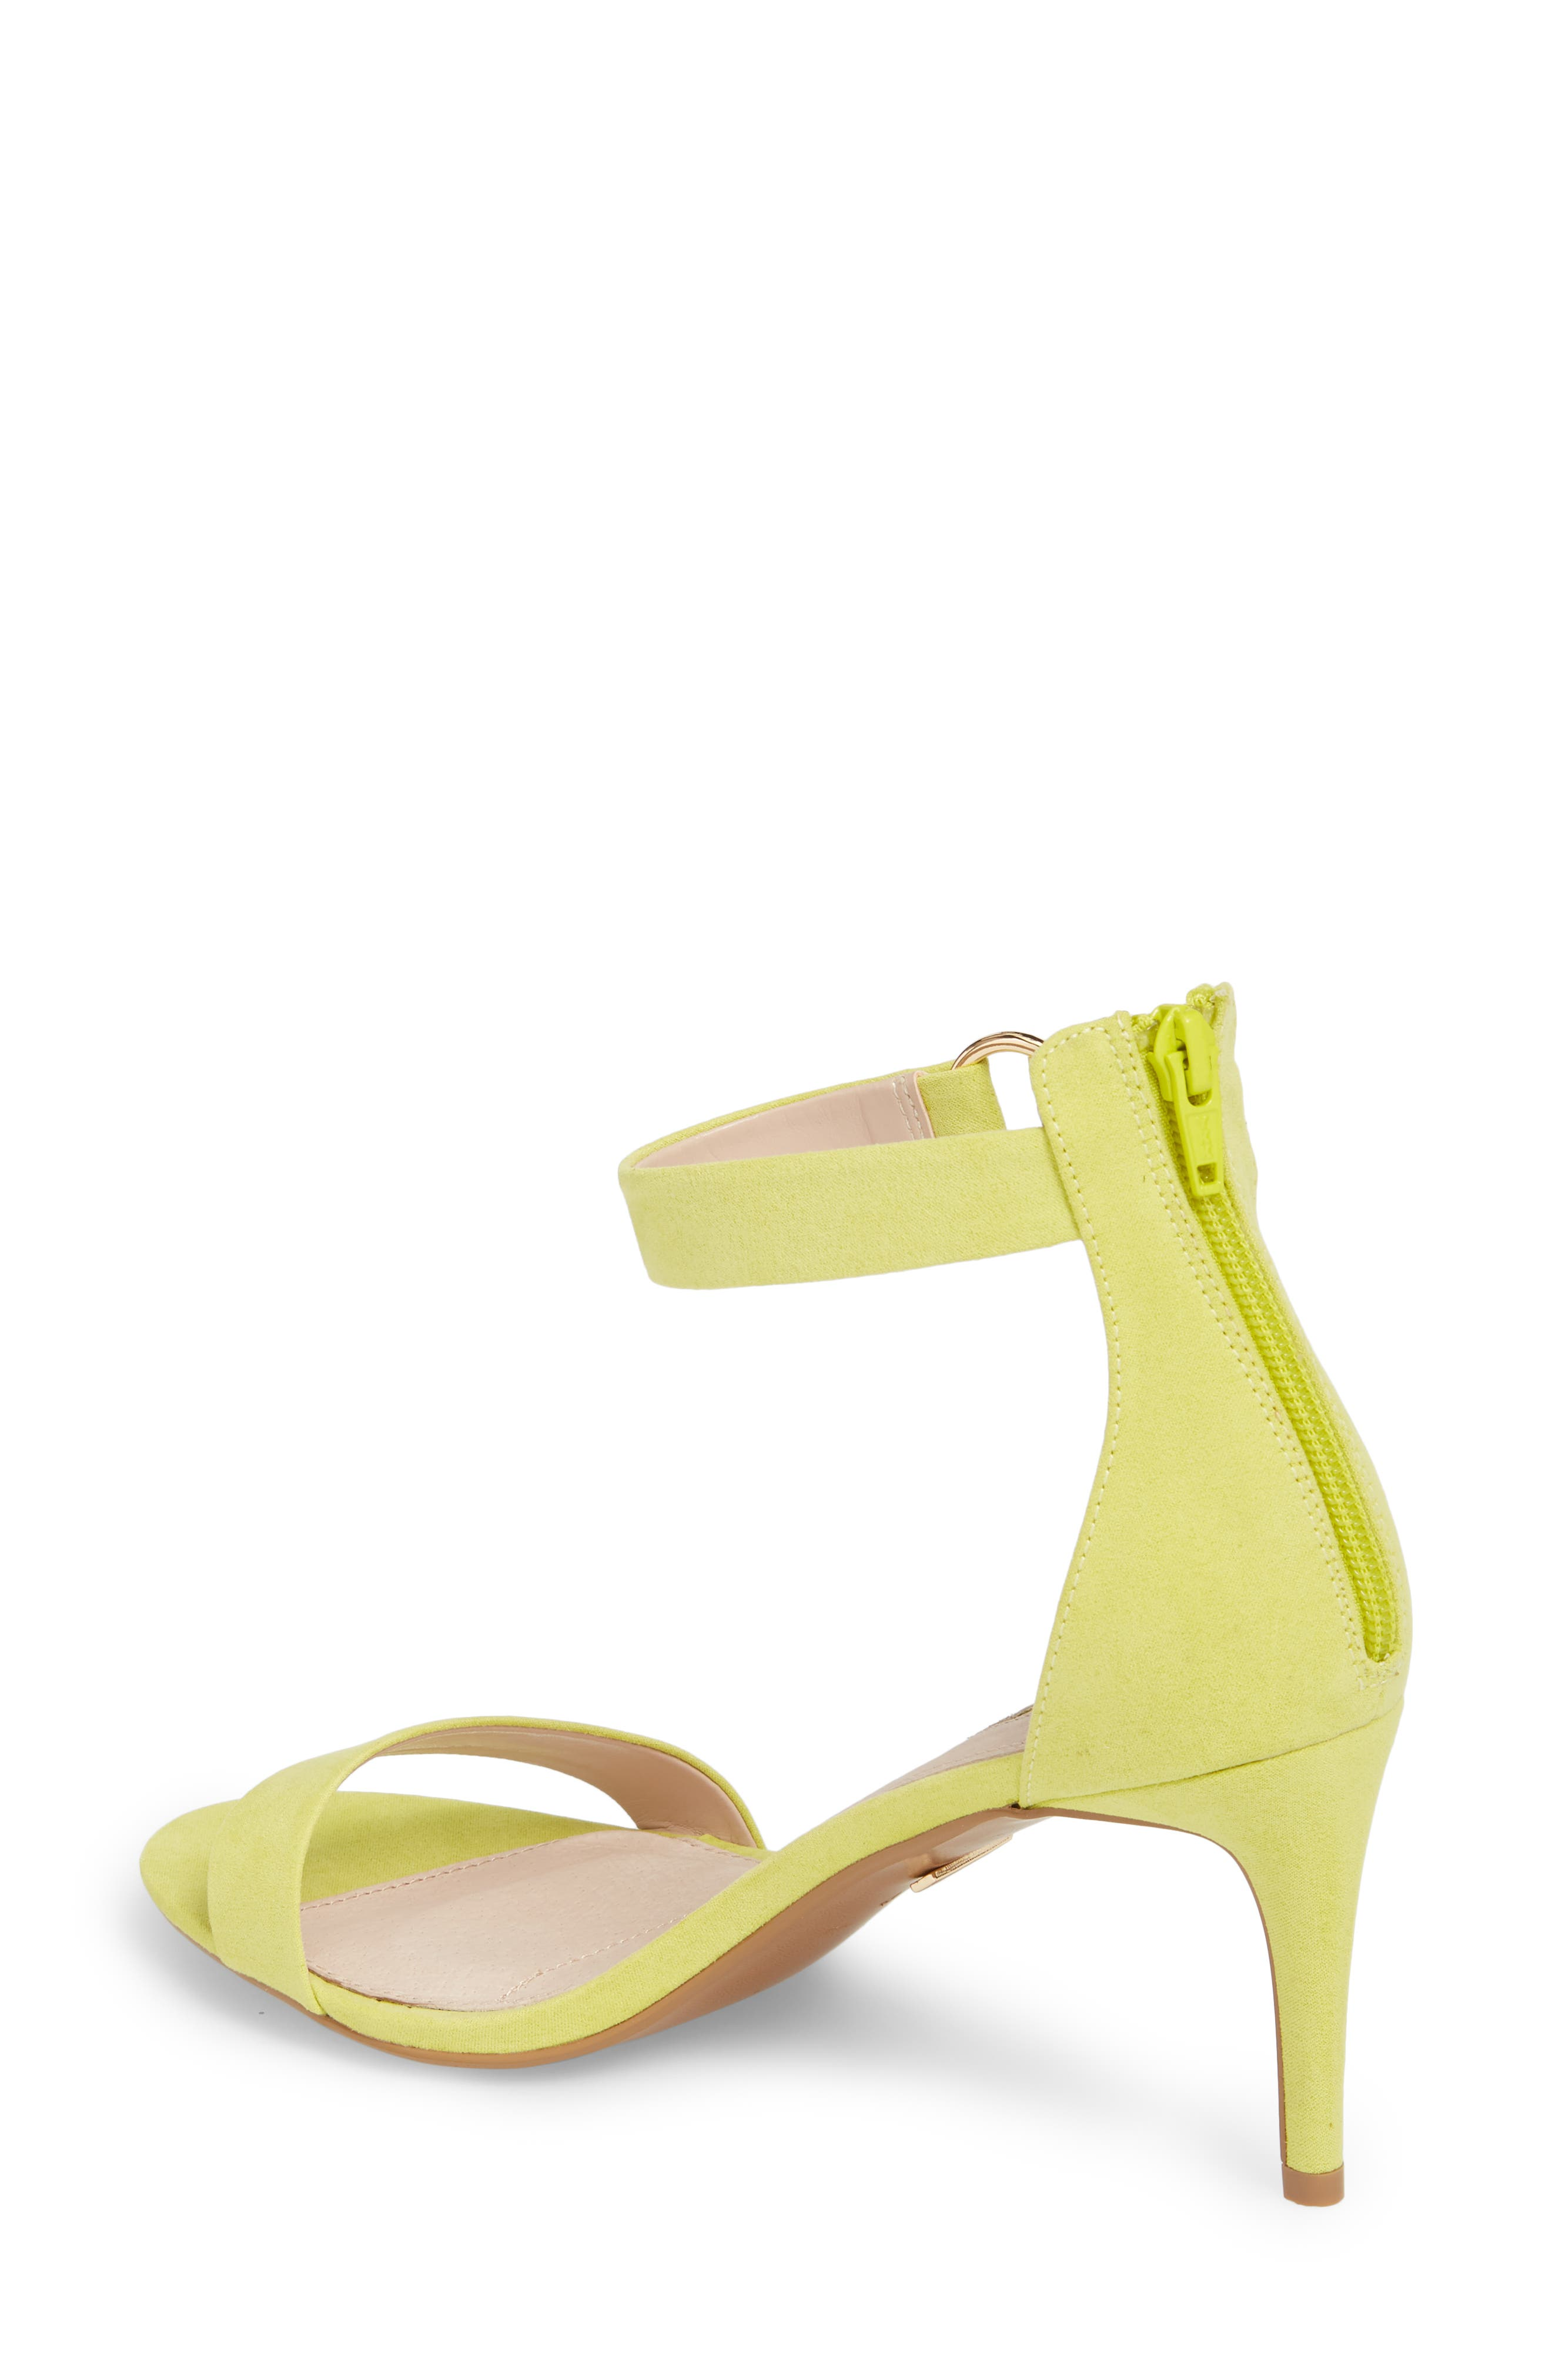 Ringed Sandal,                             Alternate thumbnail 2, color,                             Chartreuse